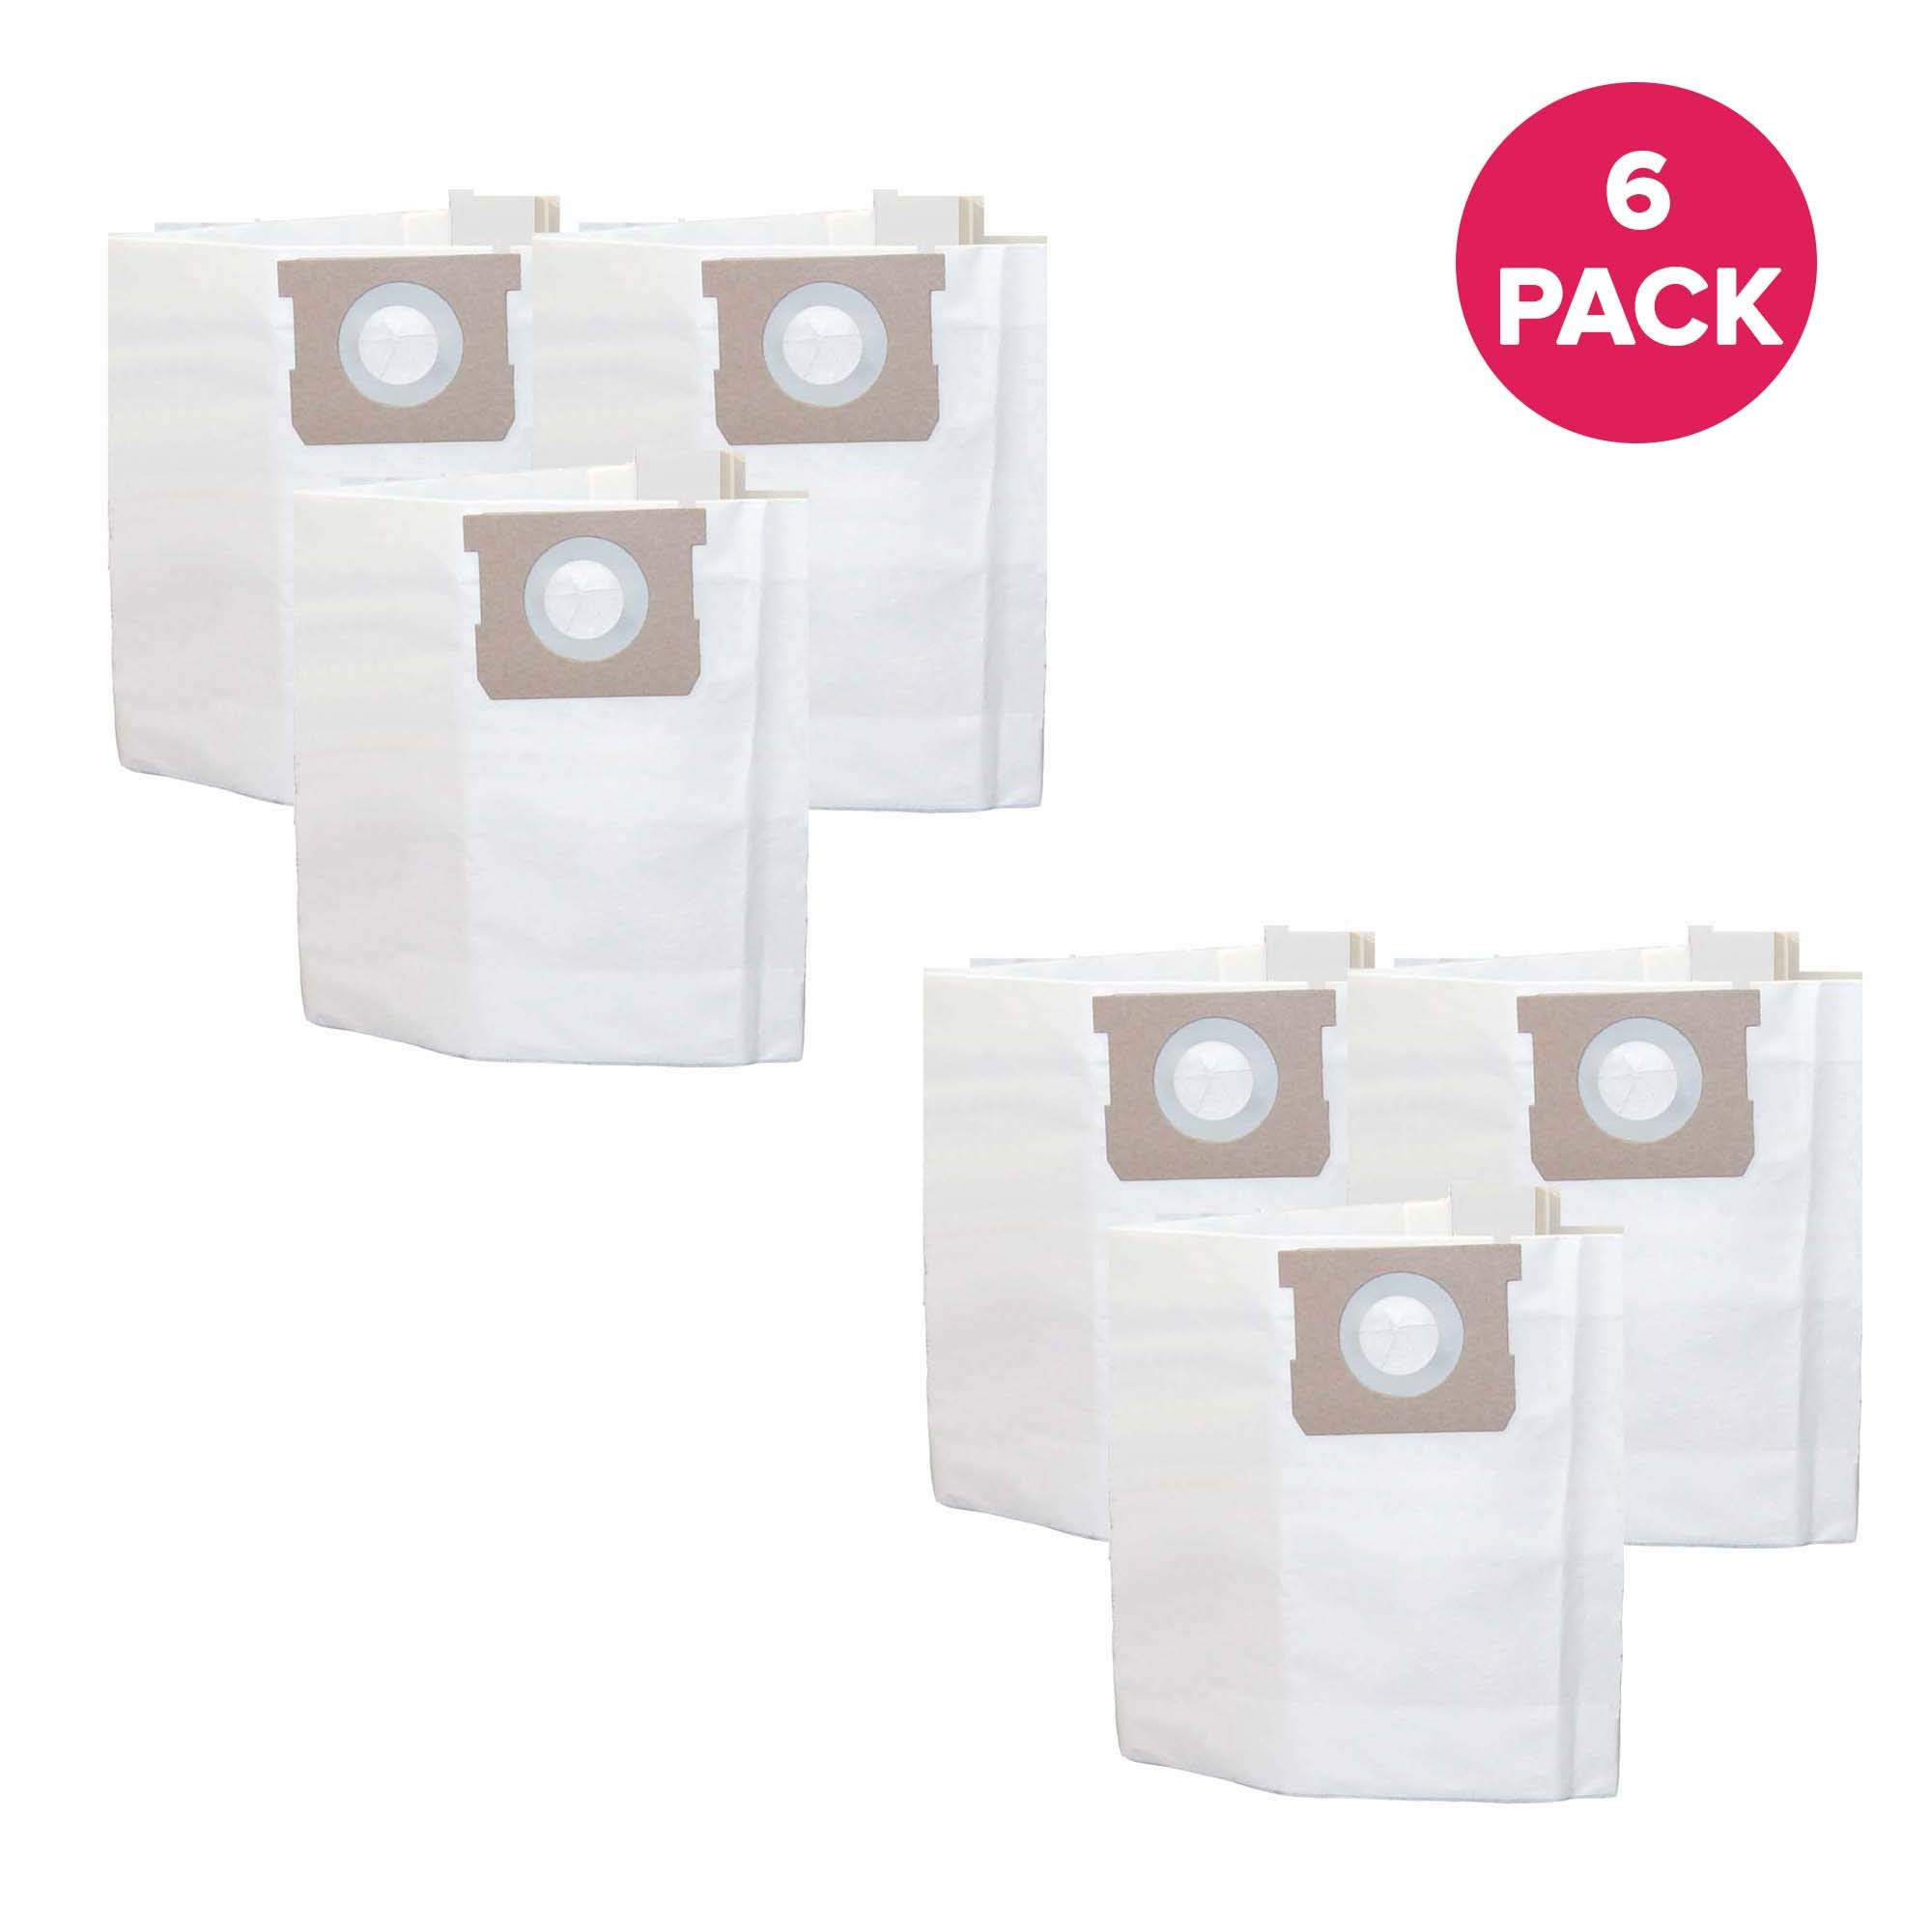 Crucial Vacuum Replacement Filtration Bags Compatible With Shop Vac Type H Bags Part # SV-9066100, 5 to 8 Gallon and Models Shop Vac 5 Gallon, 6 Gallon, 8 Gallon Wet and Dry Vacuum (6 Pack)